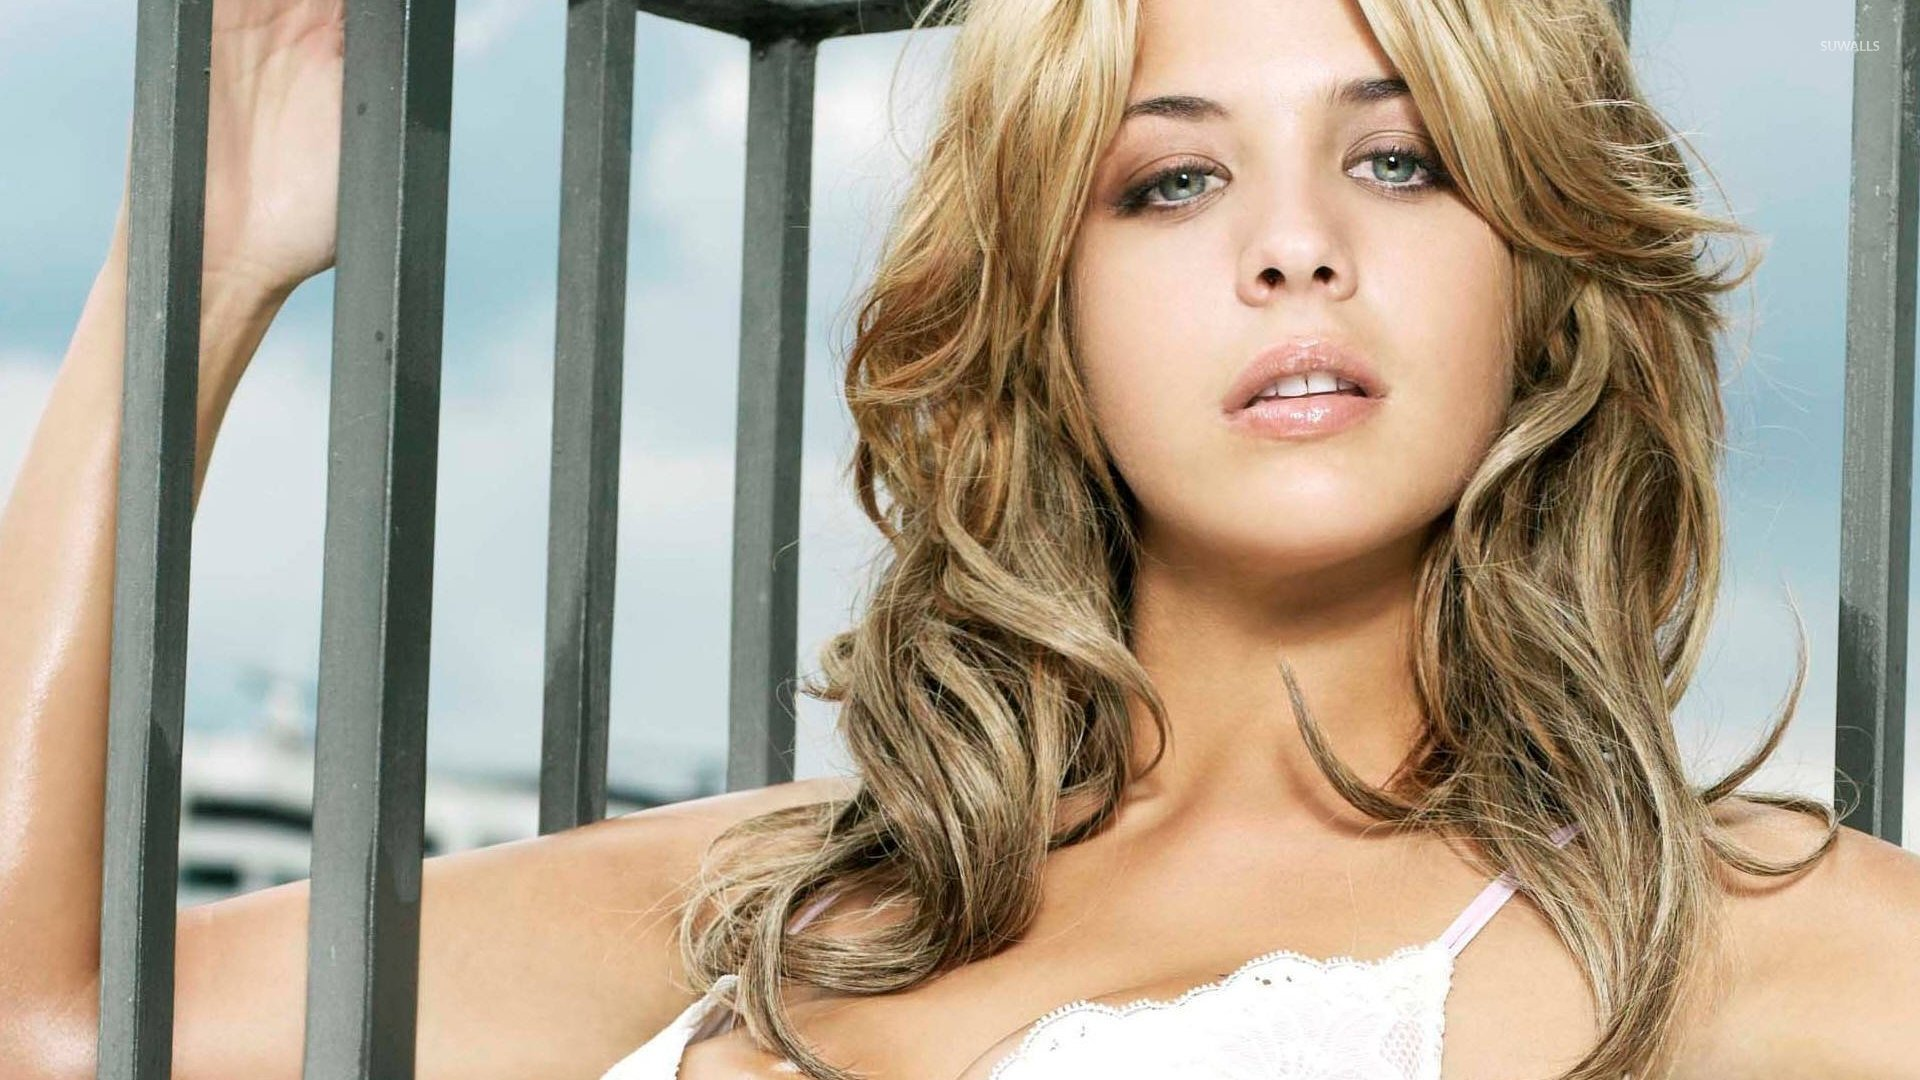 Gemma Atkinson [8] wallpaper - Girl wallpapers - #362